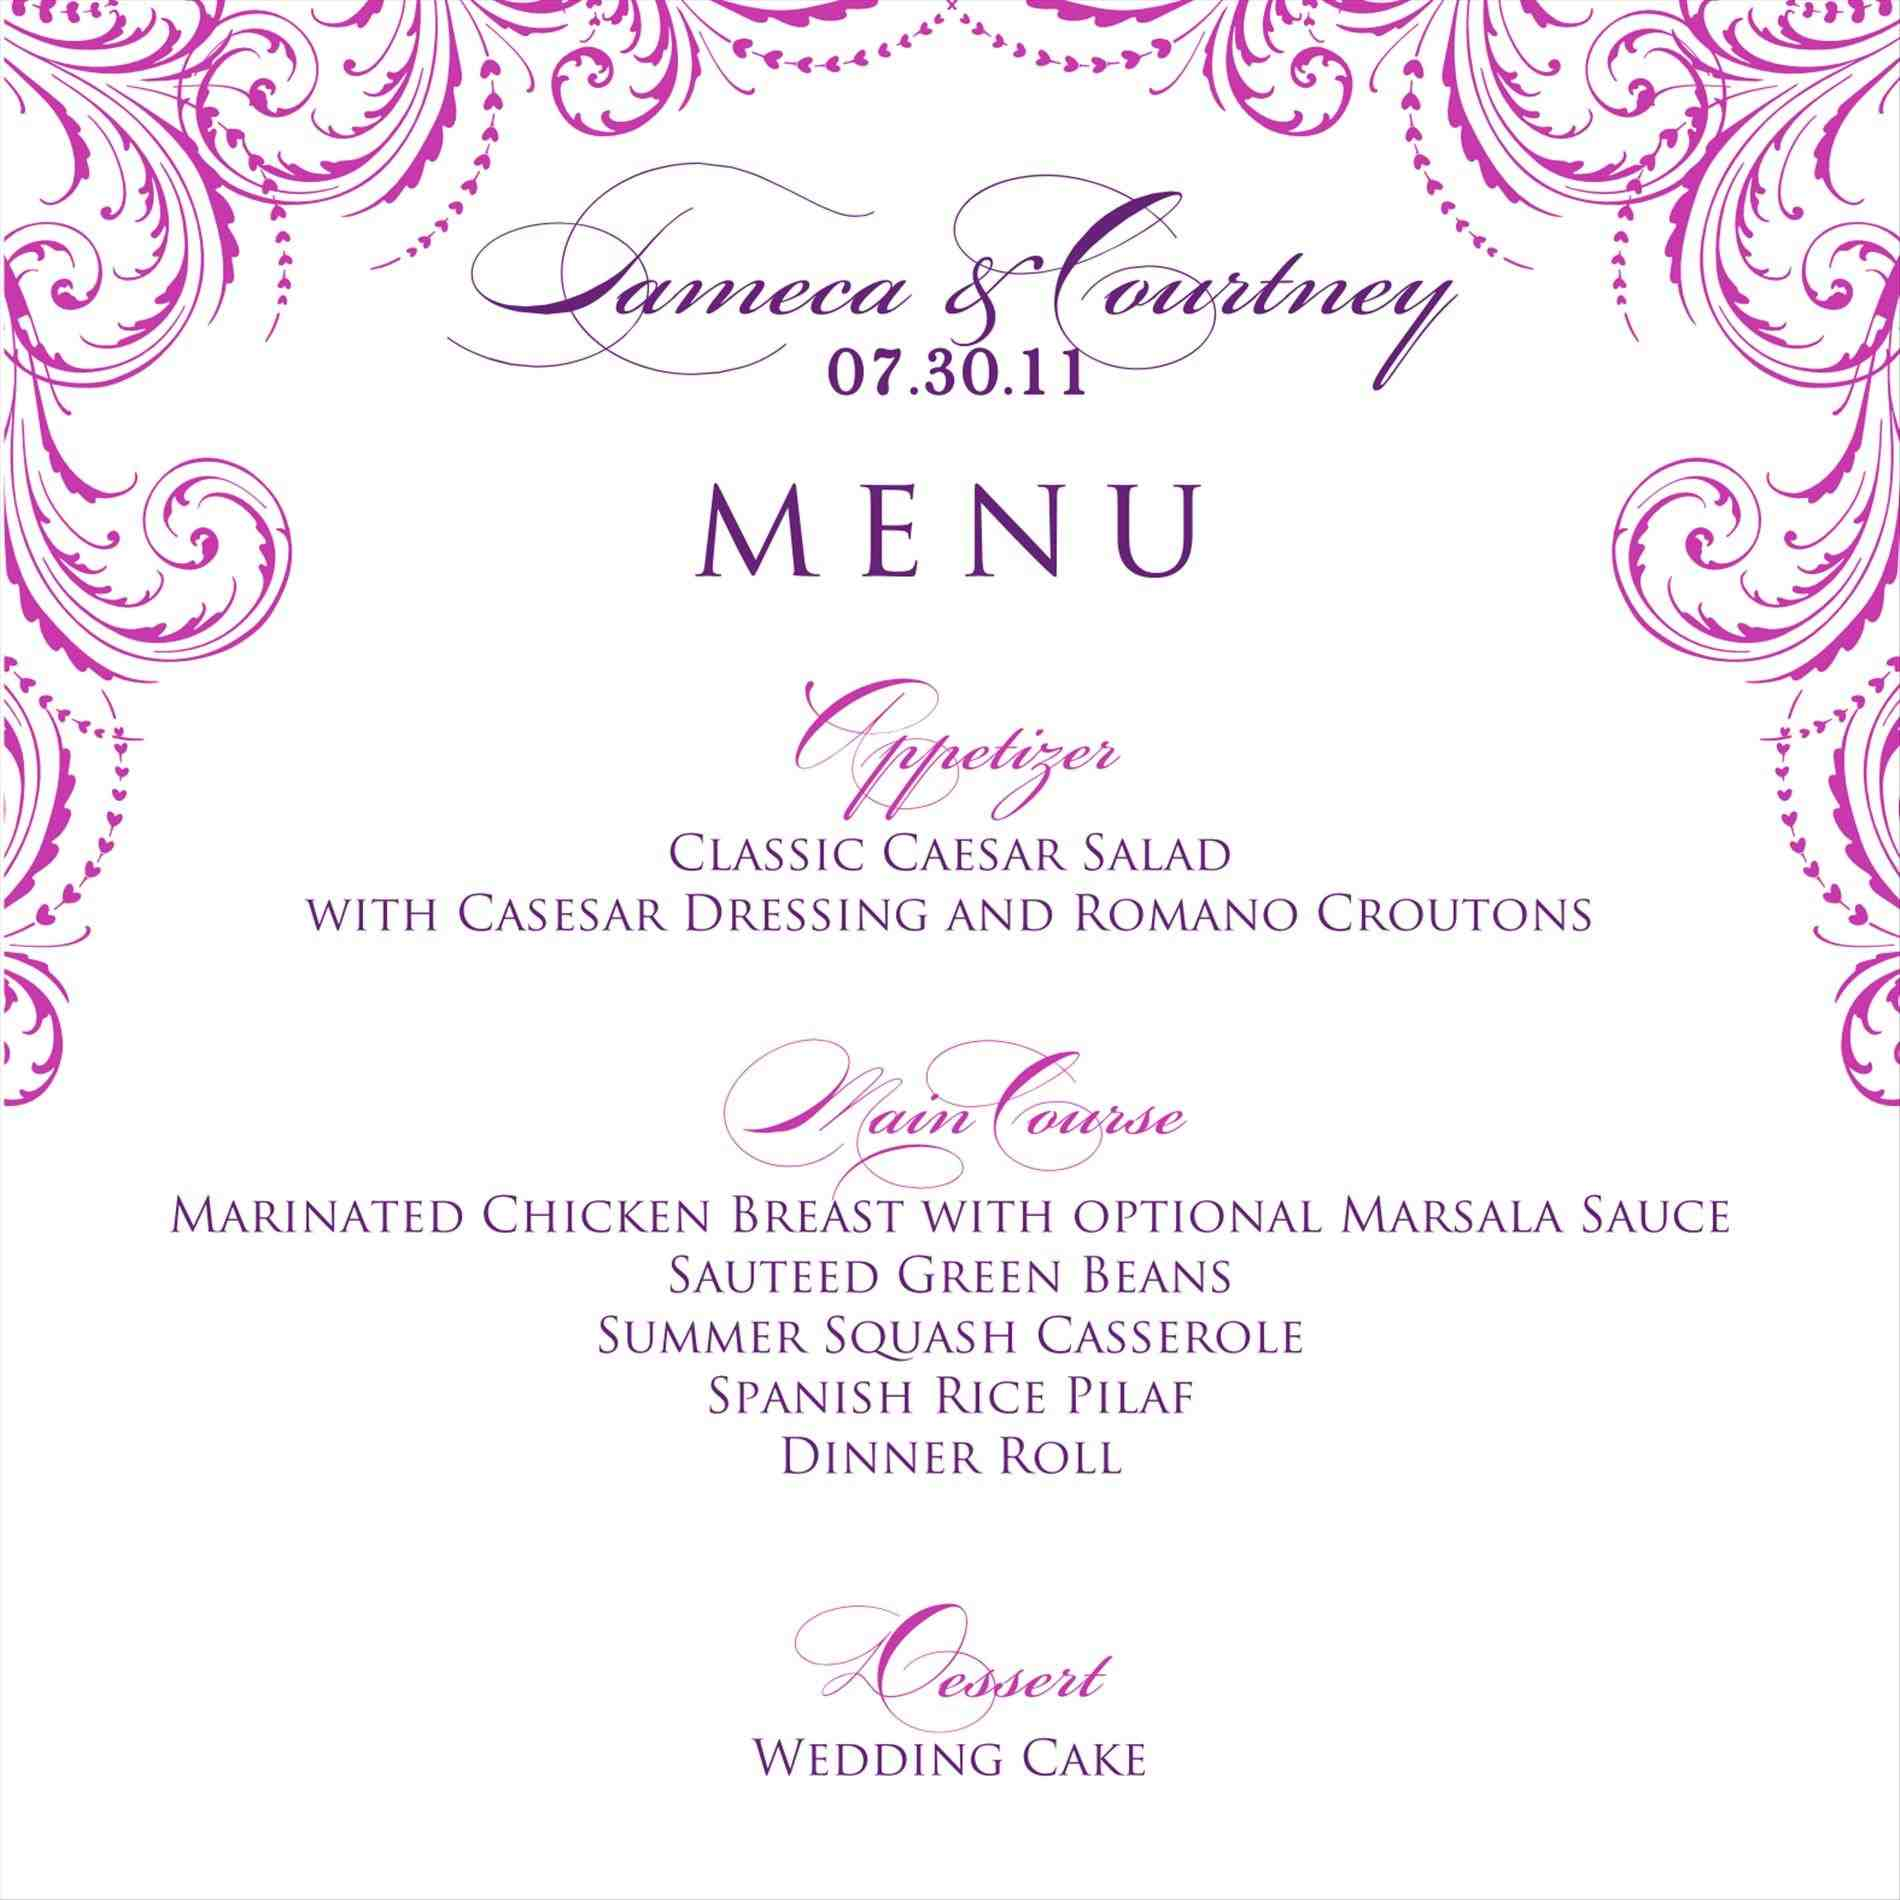 birthday dinner party menu template ; party-design-in-psd-word-publisher-birthday-Dinner-Party-Menu-Templates-dinner-party-menu-design-template-in-psd-word-publisher-dinner